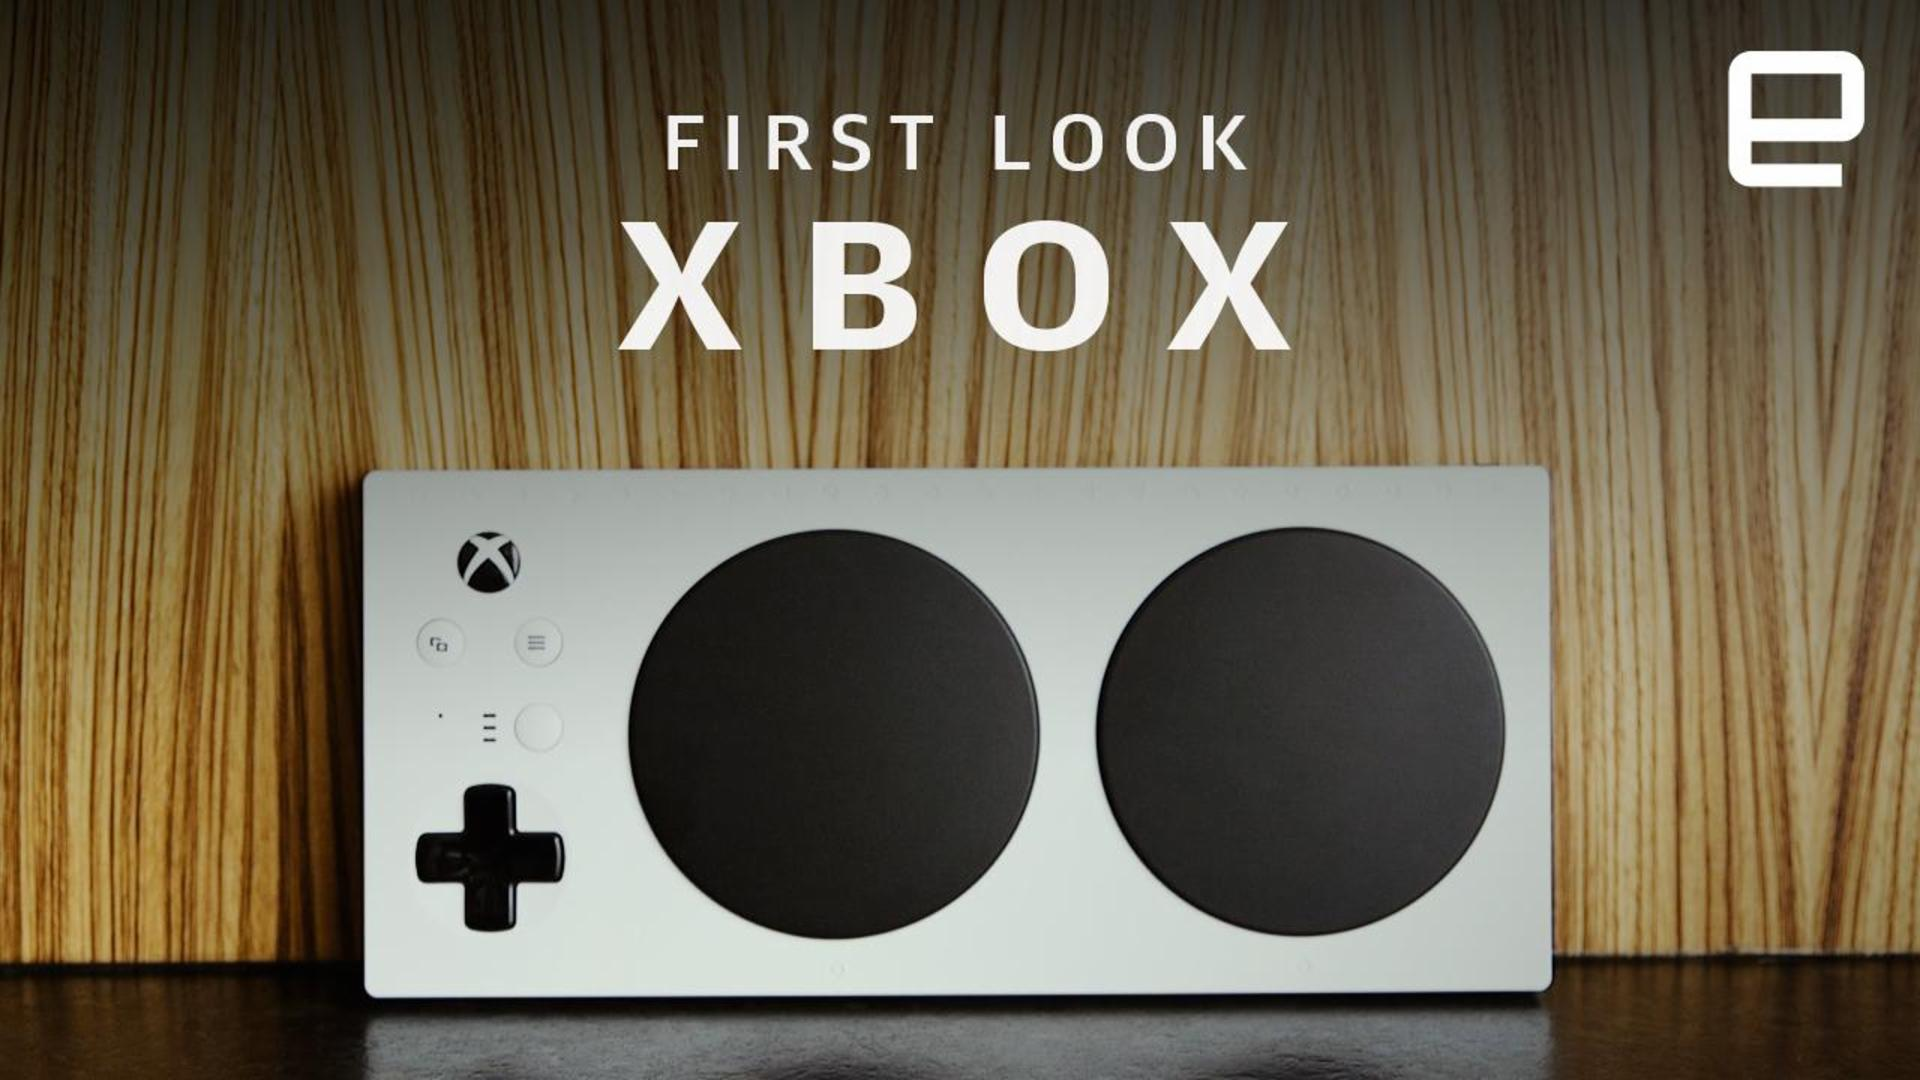 Xbox Adaptive Controller first look: A new, necessary gamepad